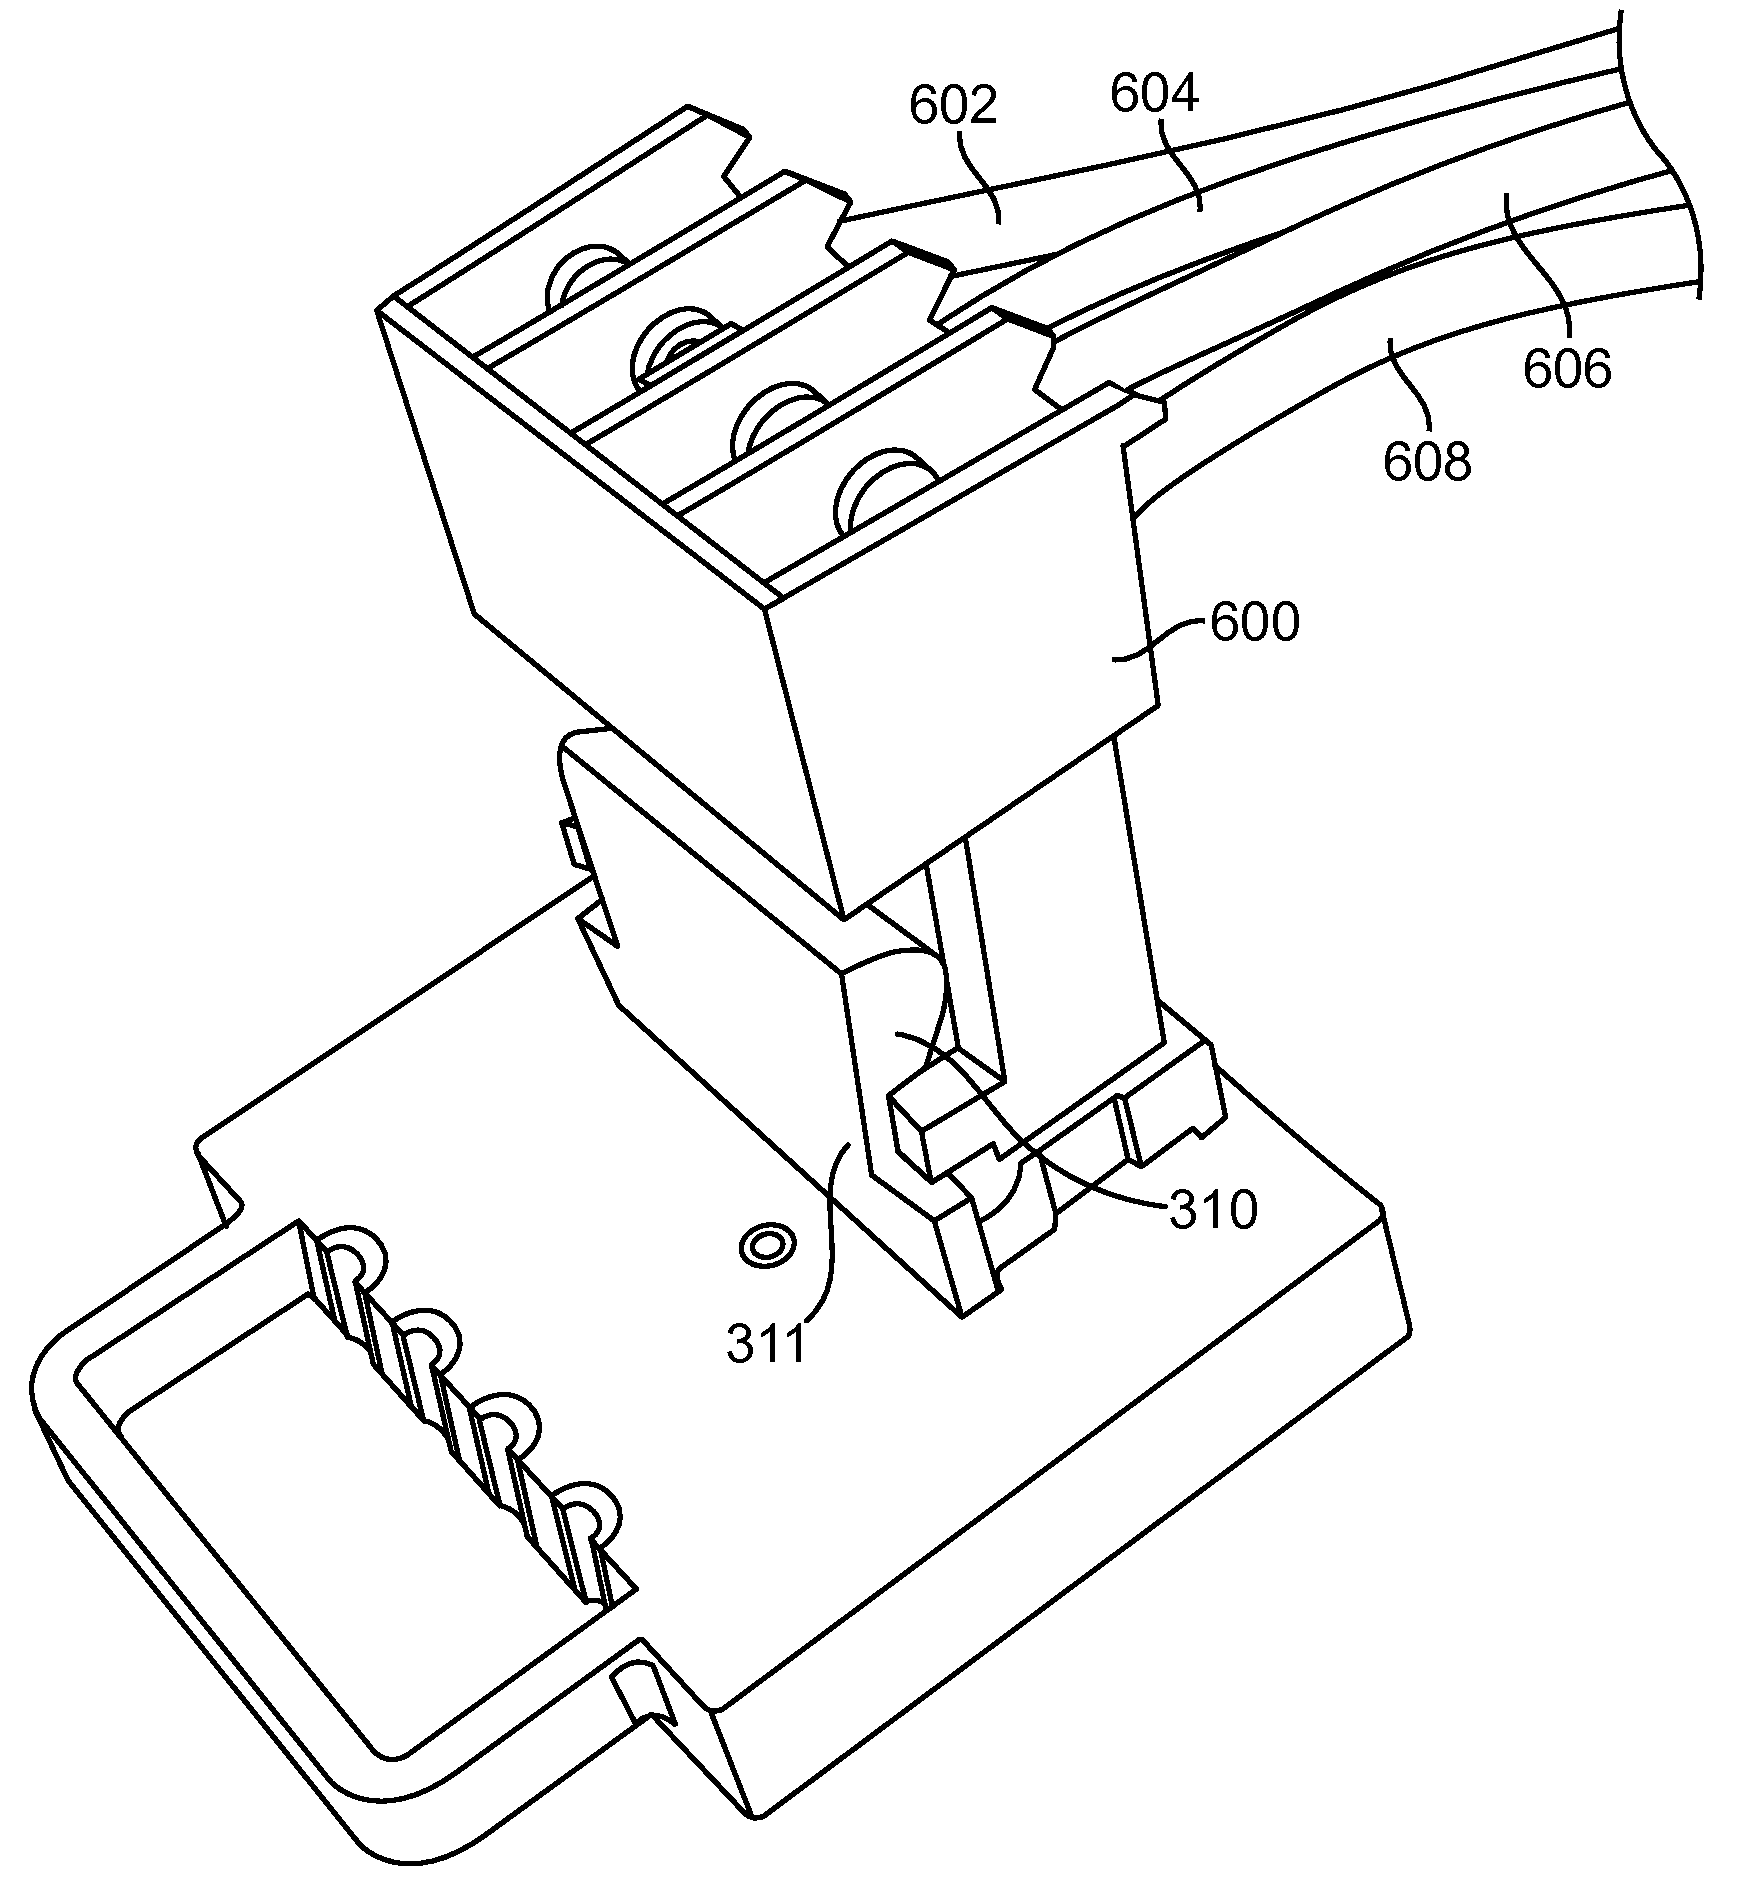 Patent Drawing: Novar Controls Wiring Diagram Lighting At Chusao.net